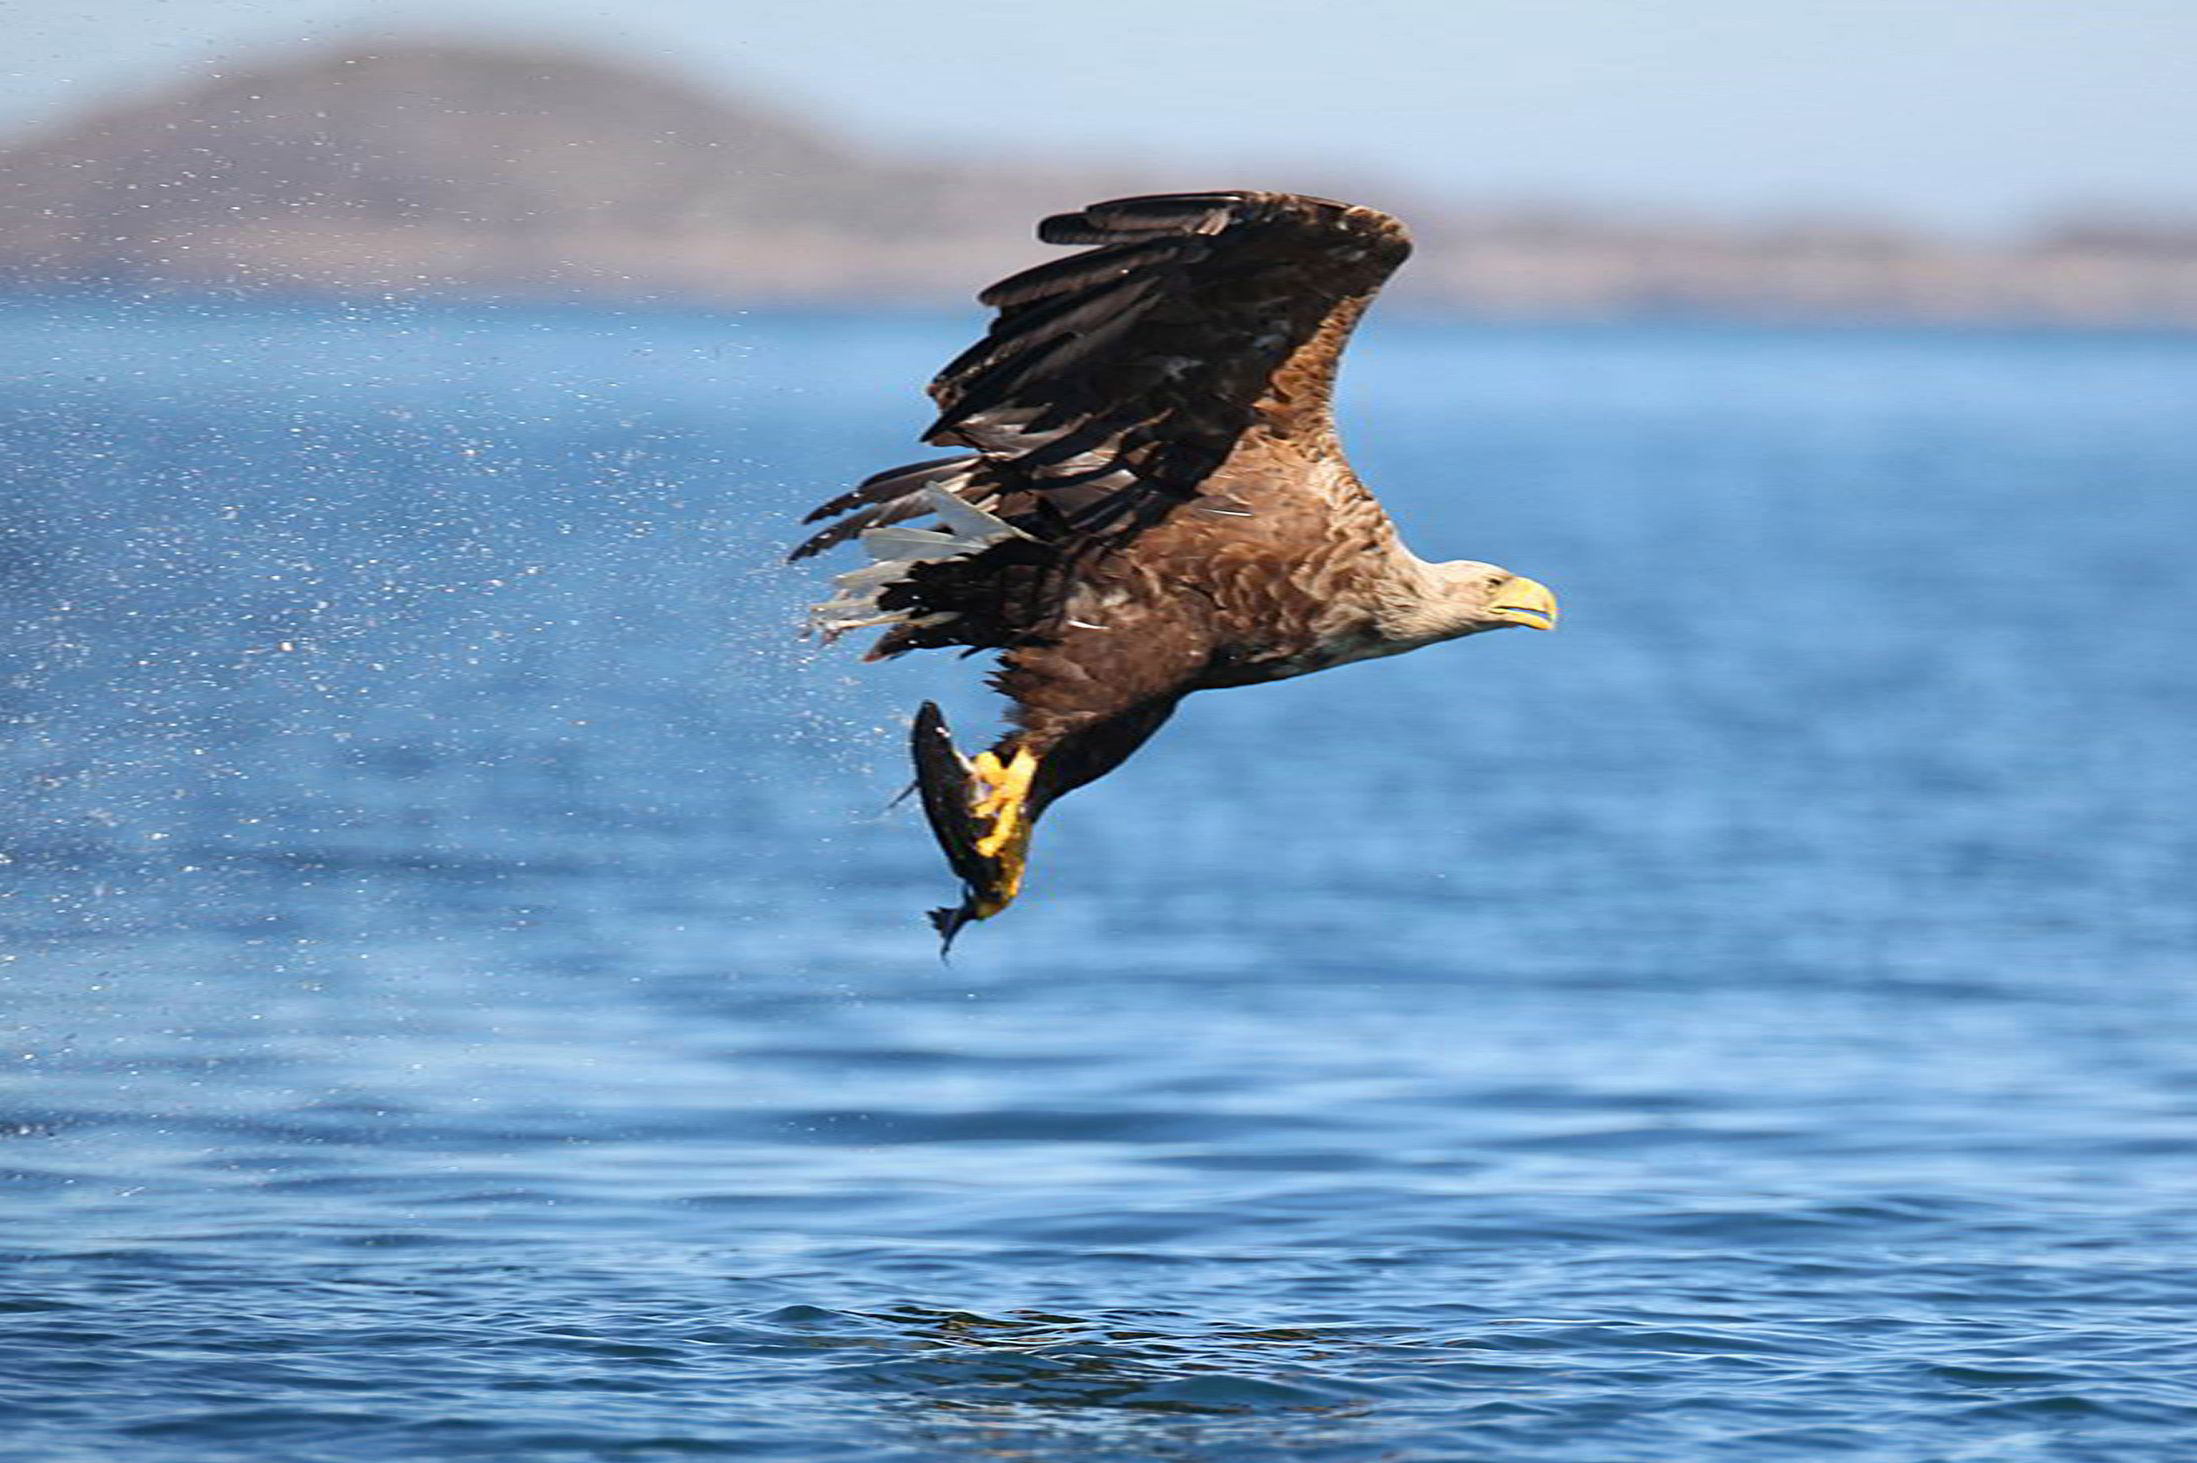 Lough Derg eagles to soar again this summer